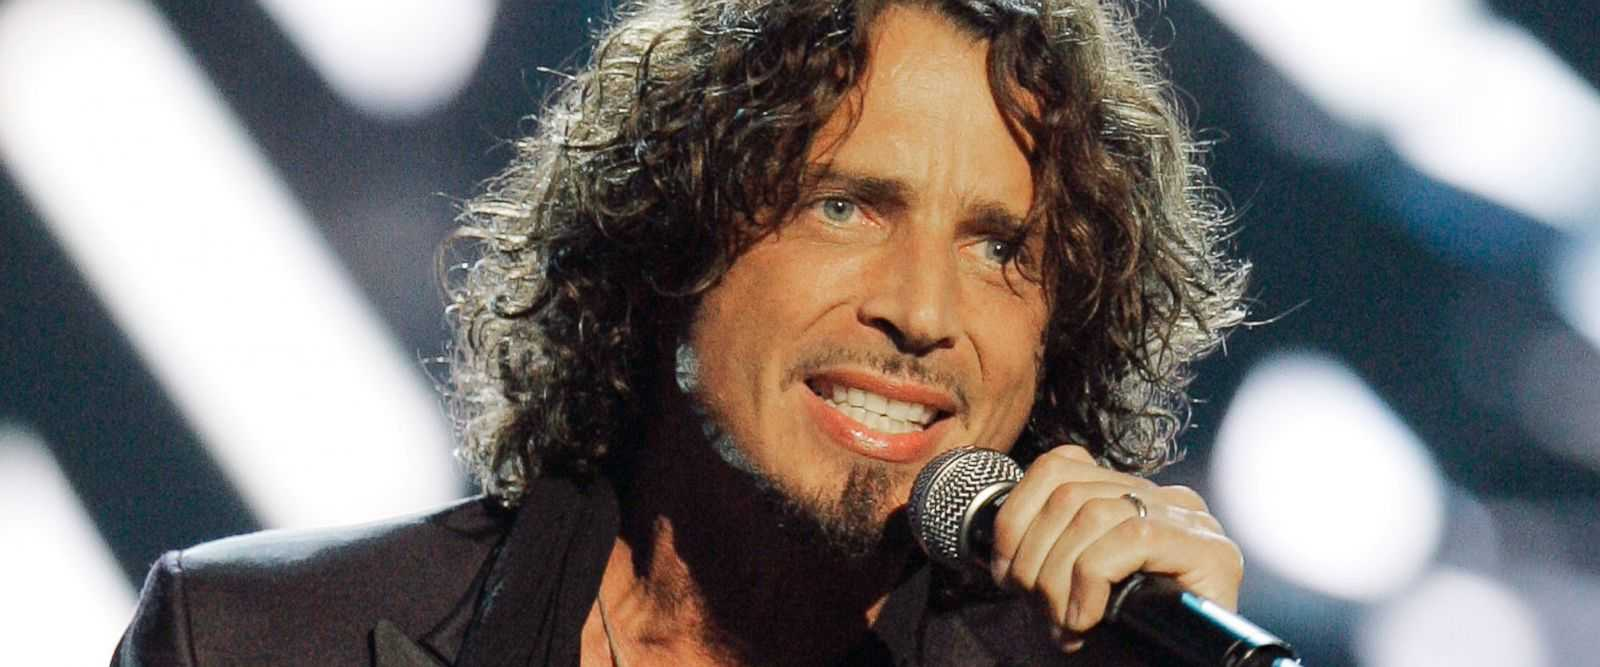 Chris Cornell To Be Laid To Rest In Los Angeles | Chris Cornell